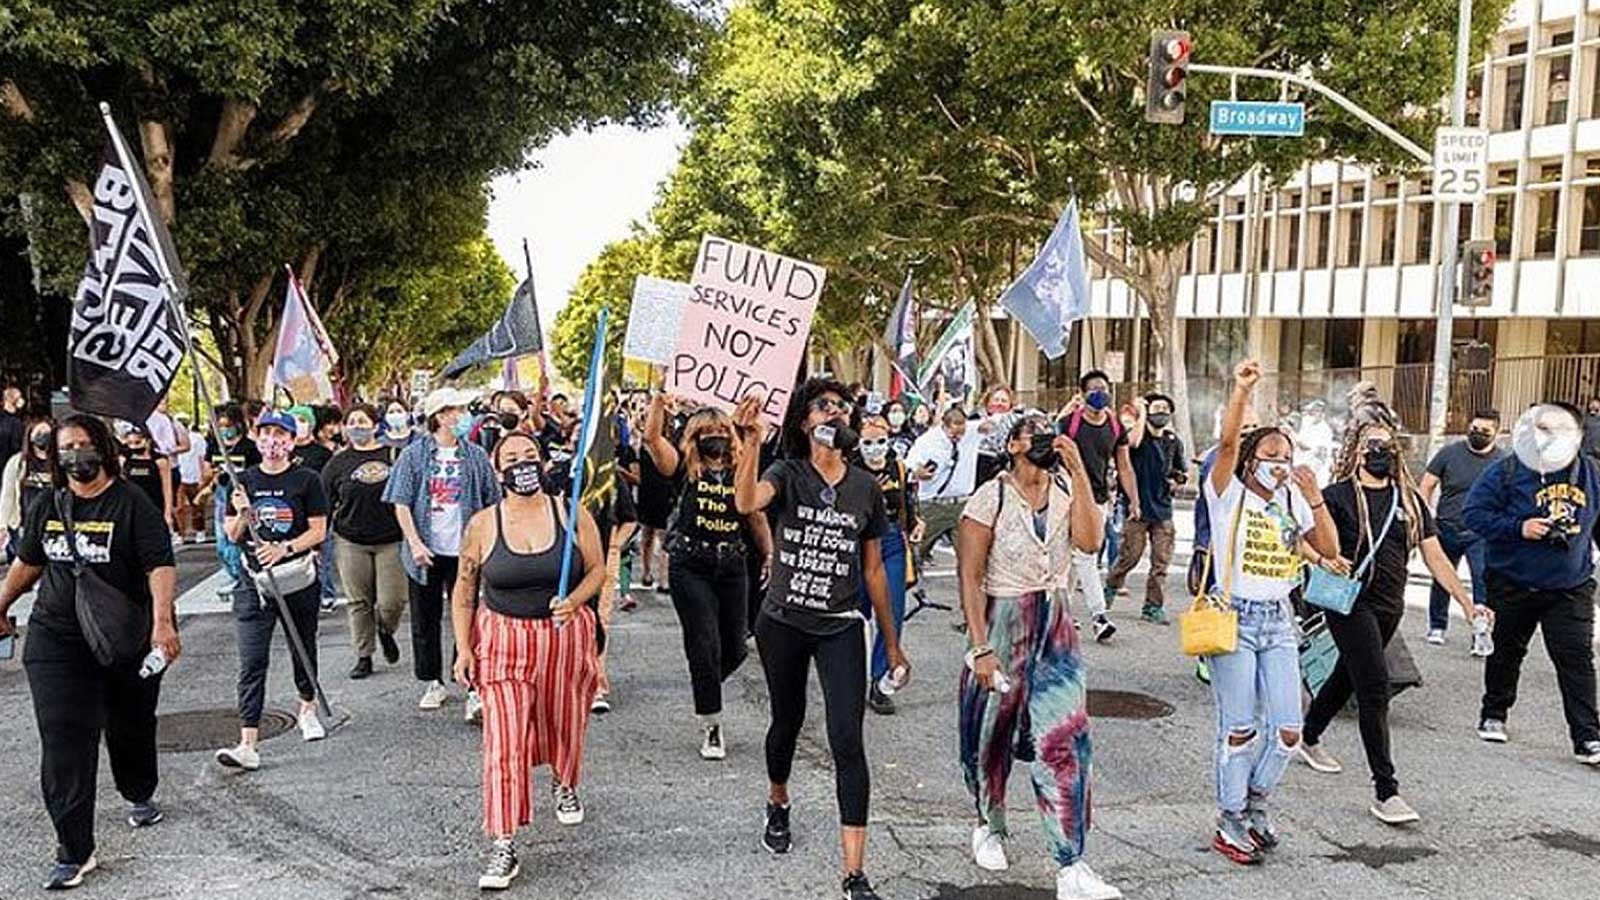 Black Lives Matter demonstrators continue the long battle against racism in this country.